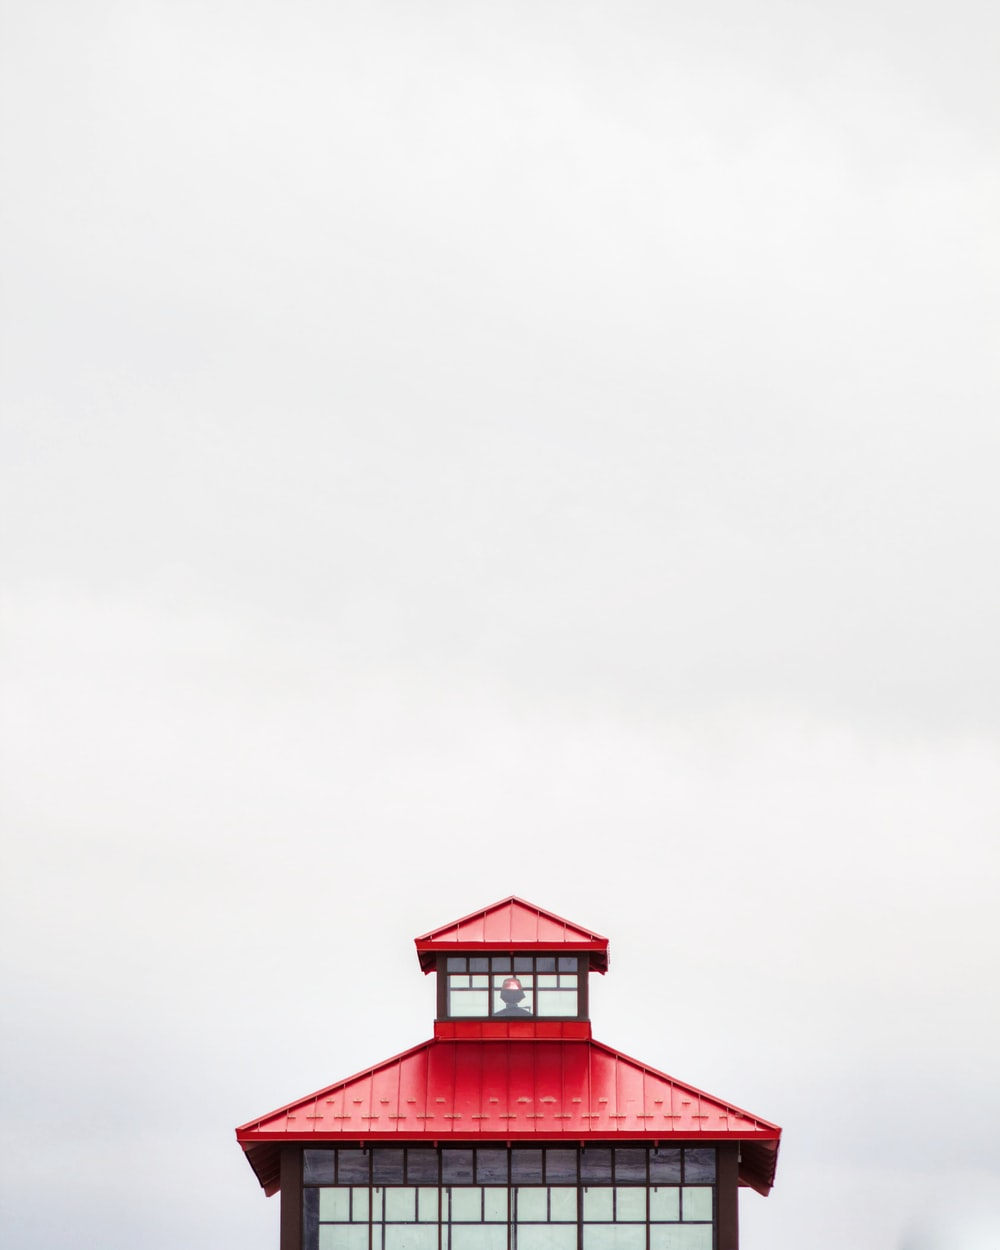 closeup photo of red and black pagoda on white background